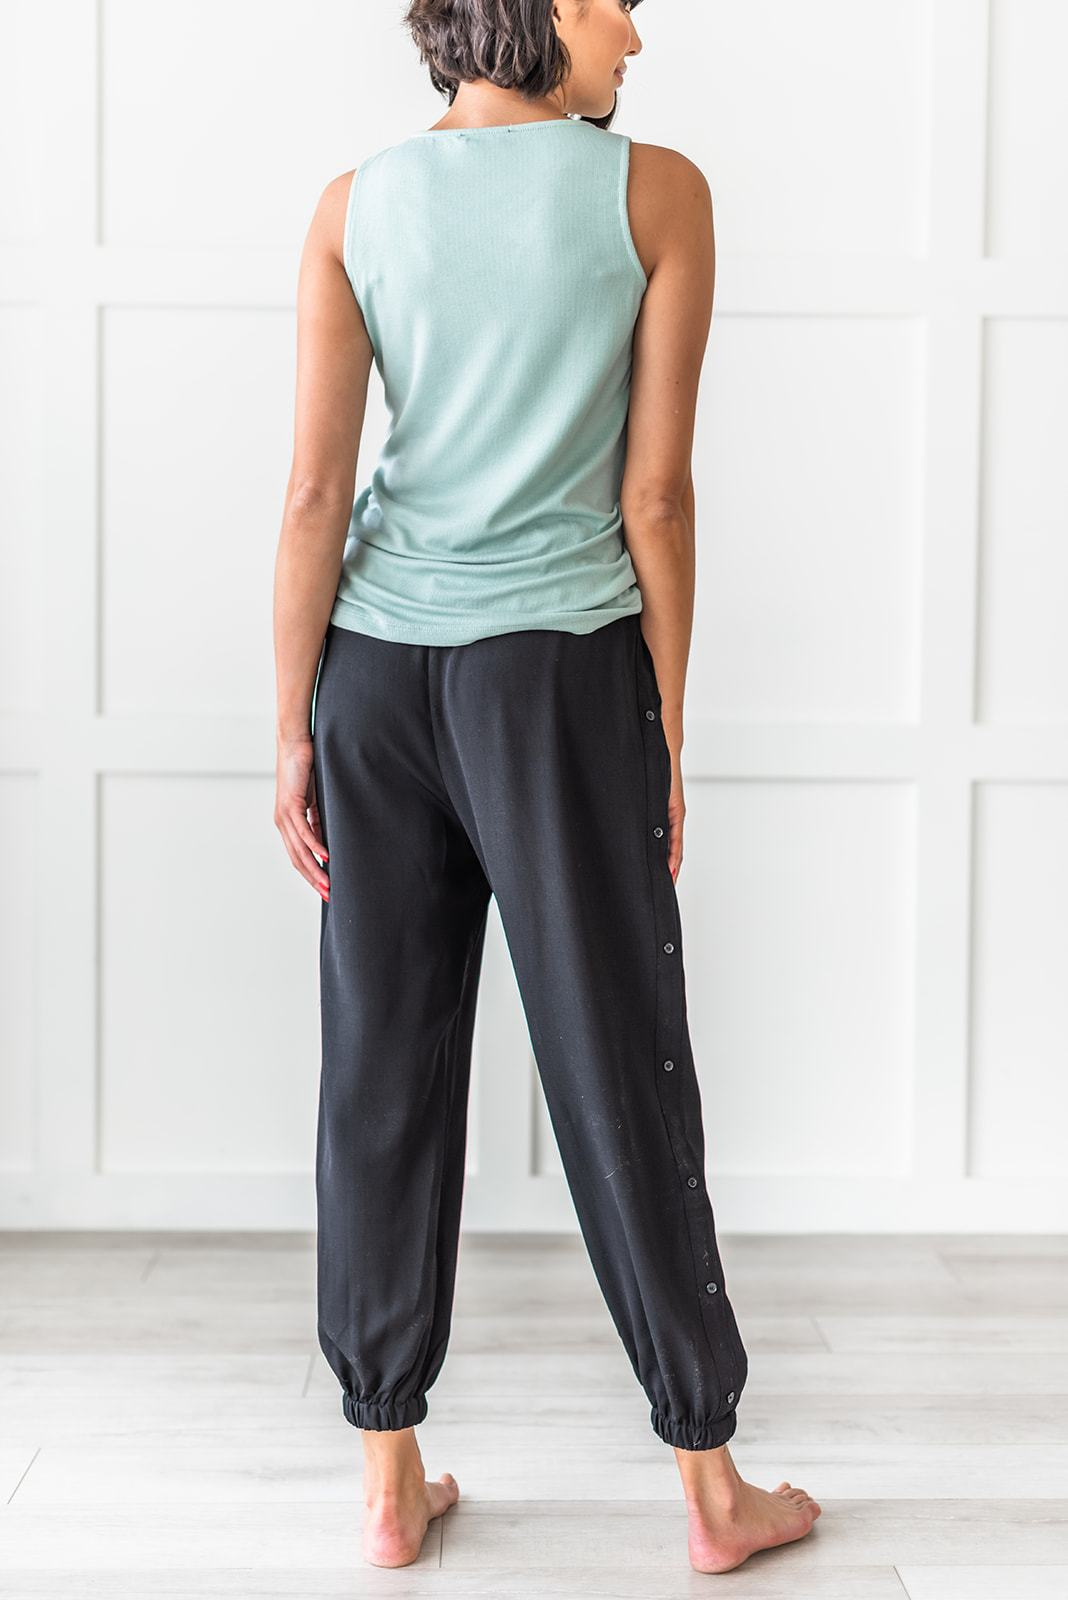 Let's Get Real Joggers - Lola Cerina Boutique